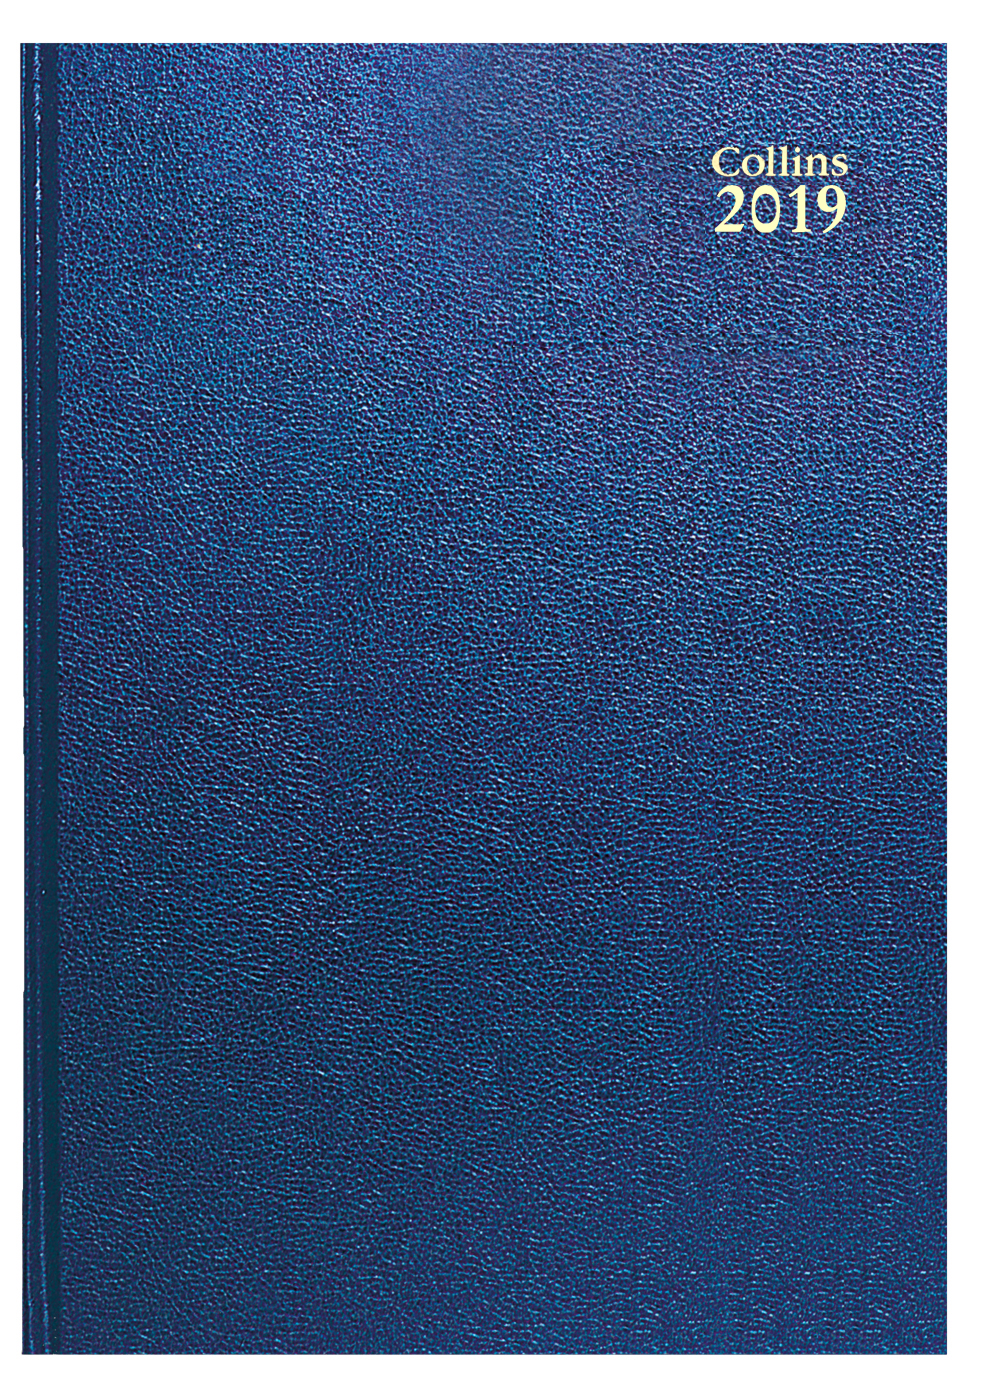 Collins A5 Desk Diary Week to View 2019 Blue